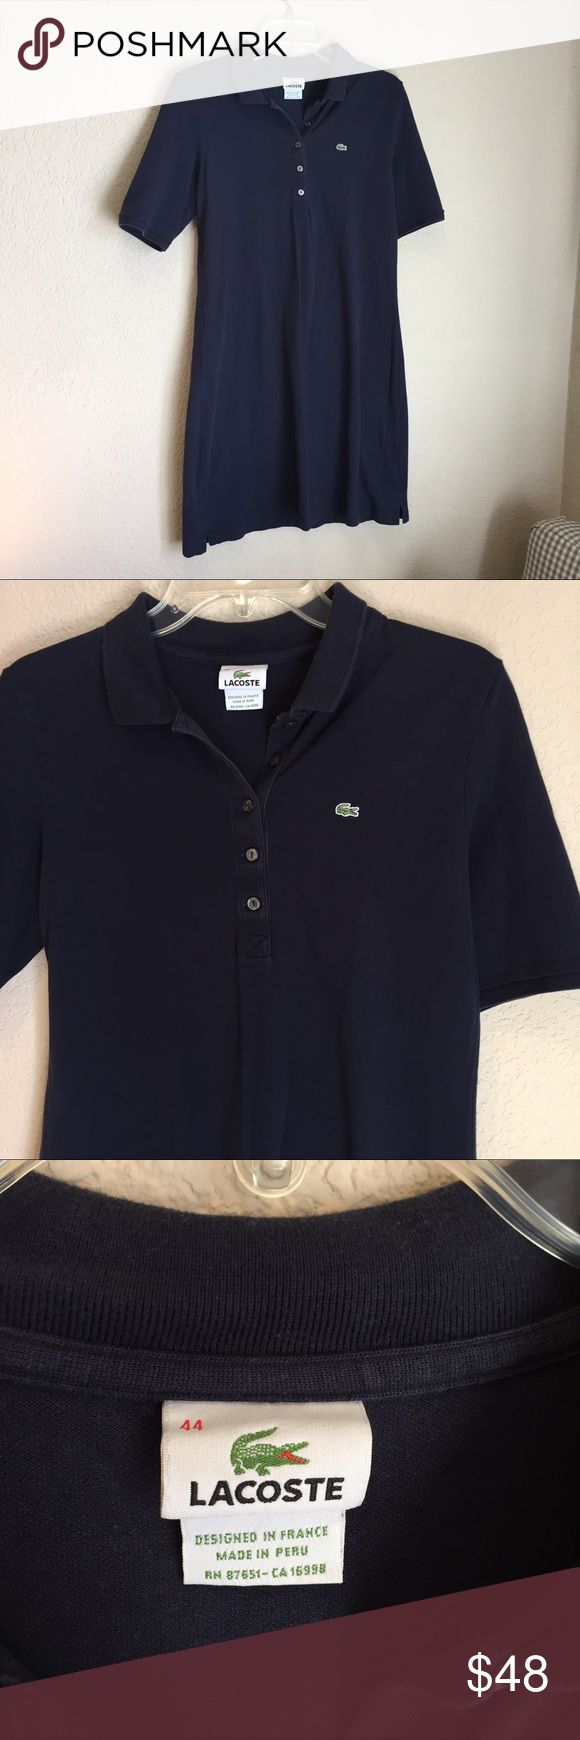 Lacoste polo shirt dress Lacoste polo shirt dress good preloved condition navy blue euro size 44 USA size large Lacoste Dresses